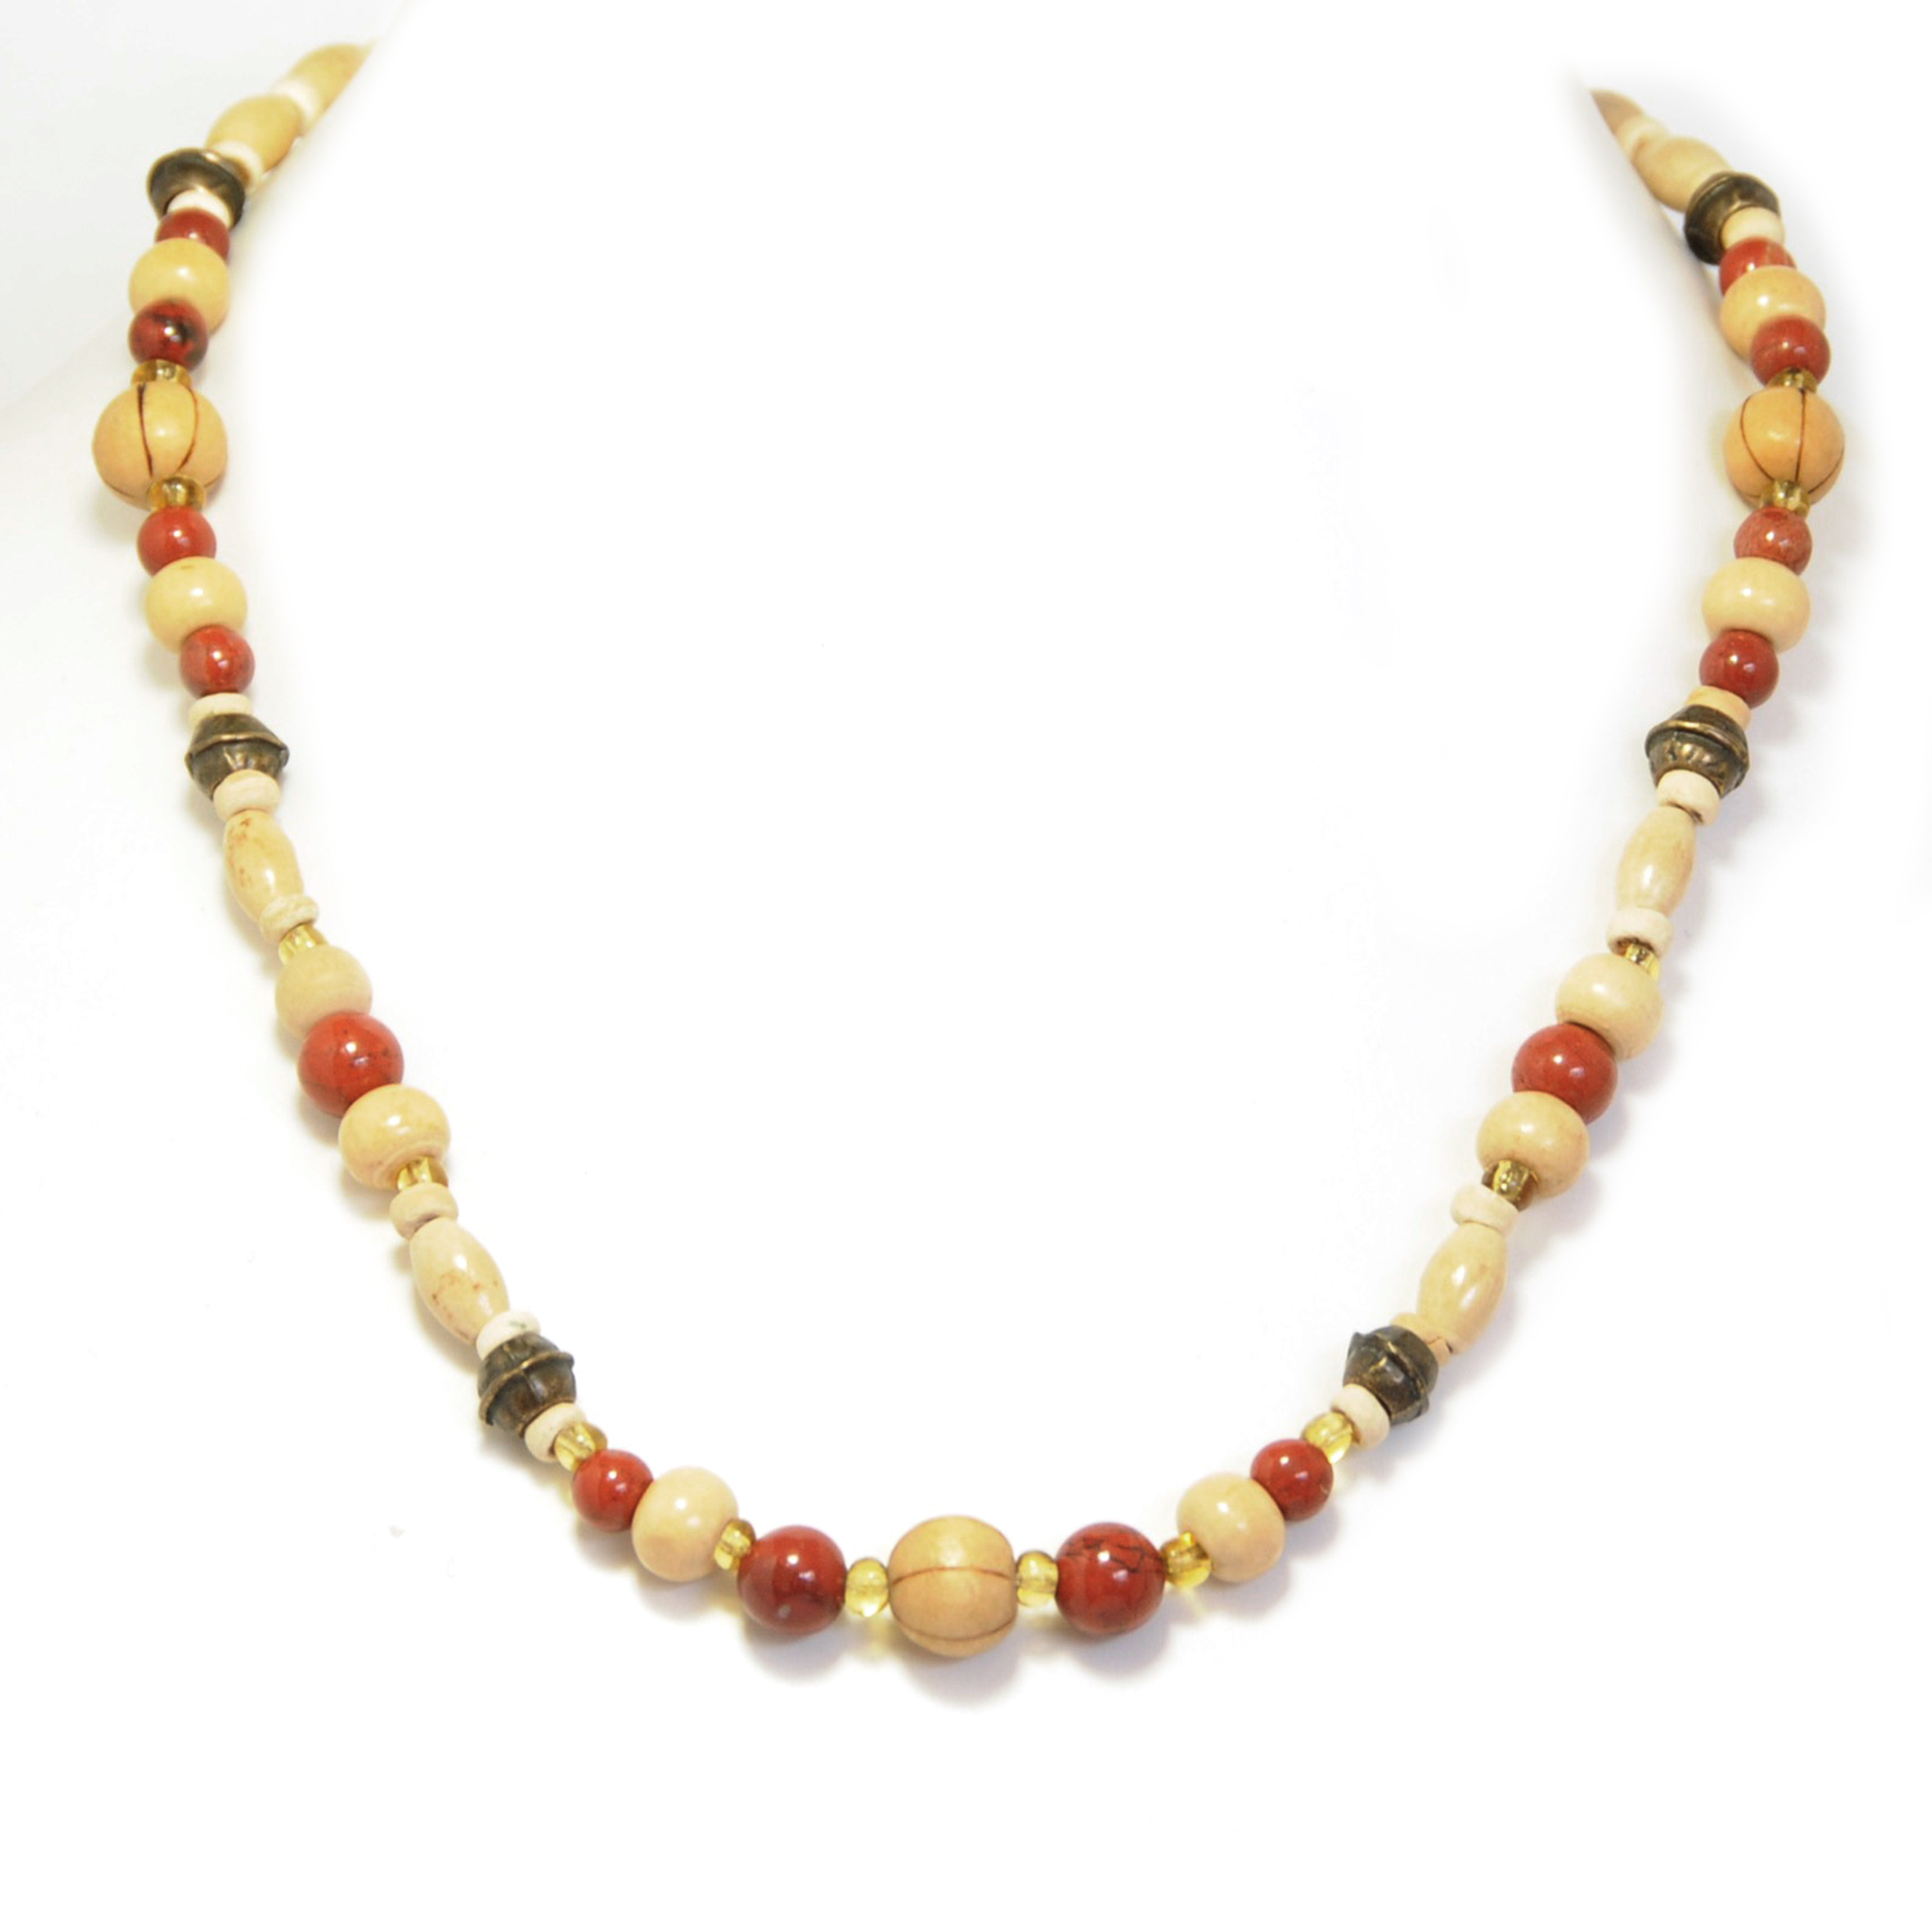 Red jasper, wood and antique brass beads necklace